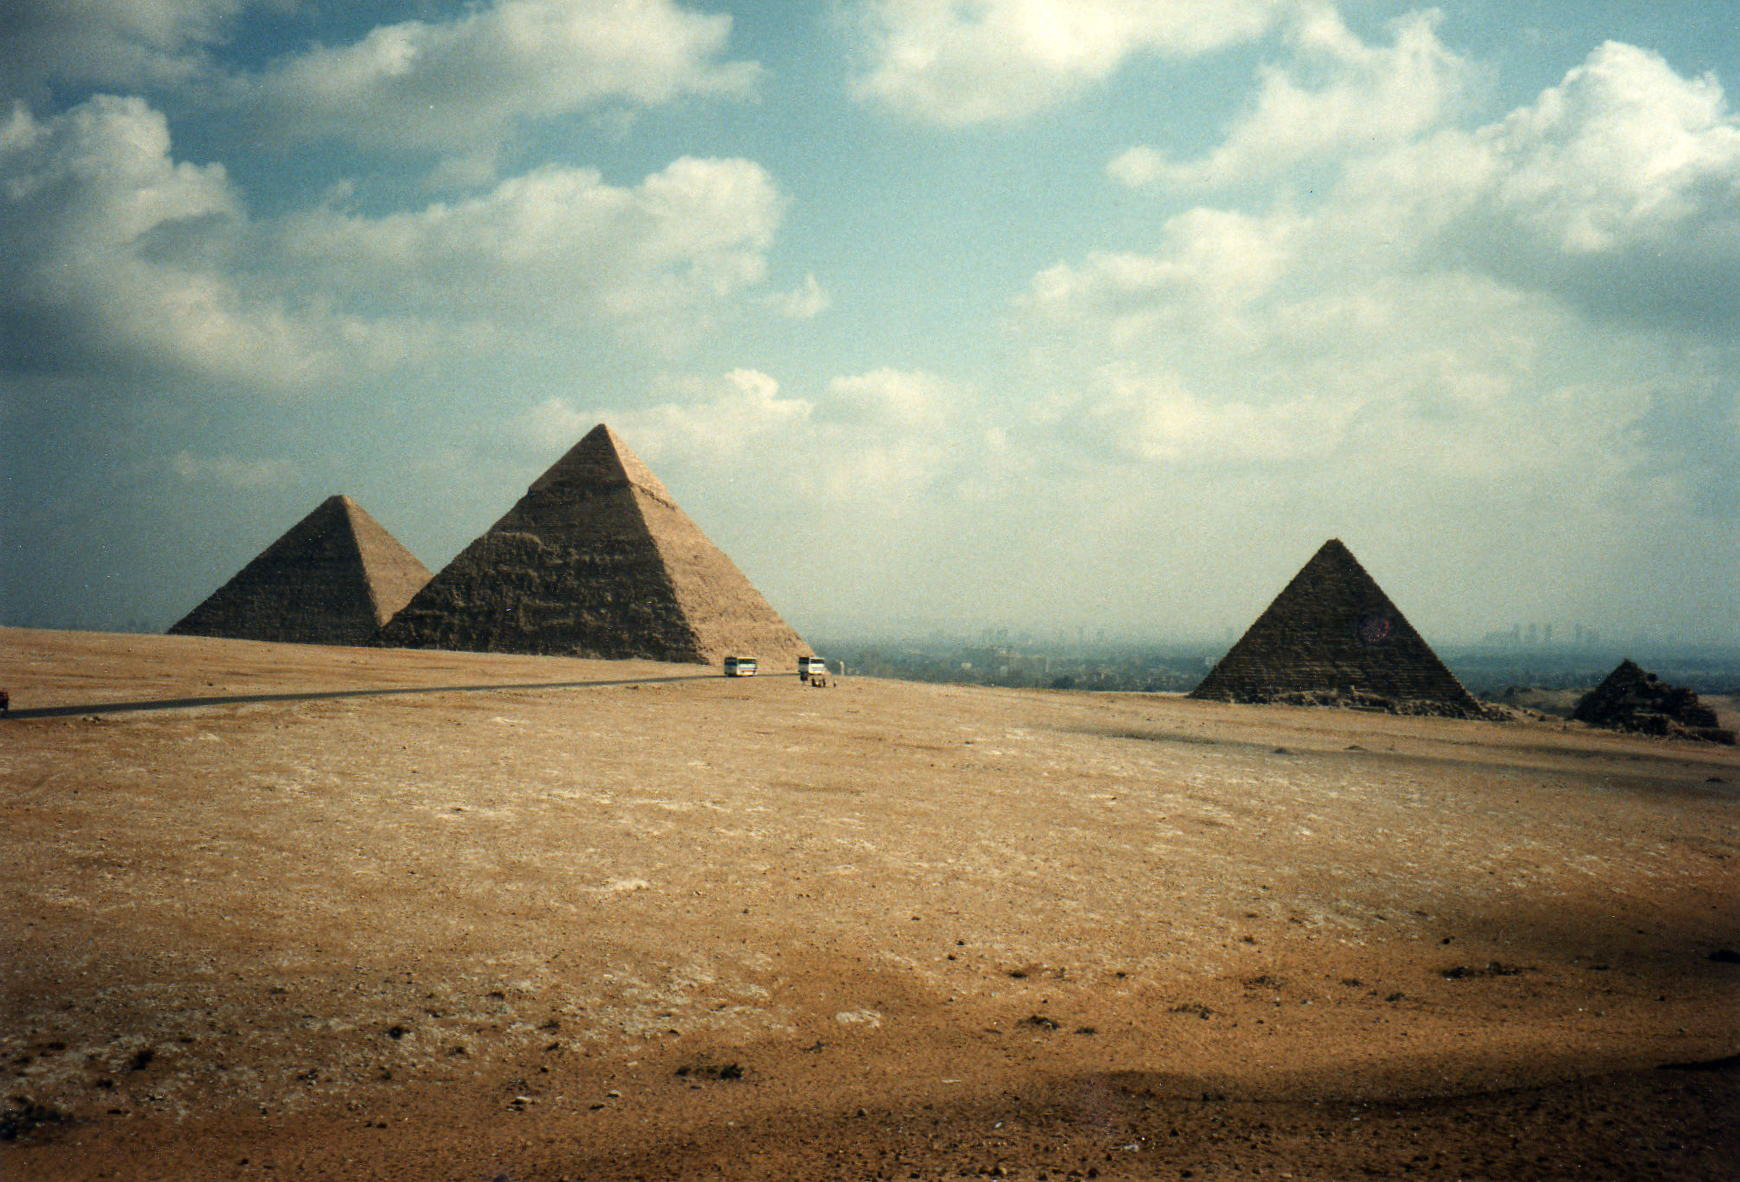 The Great Pyramids of Giza - left to right, the great pyramid of Khufu, 481 feet;the Pyramid of Khafre 448 feet; the pyramid of Menkaure 215 feet; the pyramids of Queens. Image ©  David Holt  used with permission of Creative Commons license.